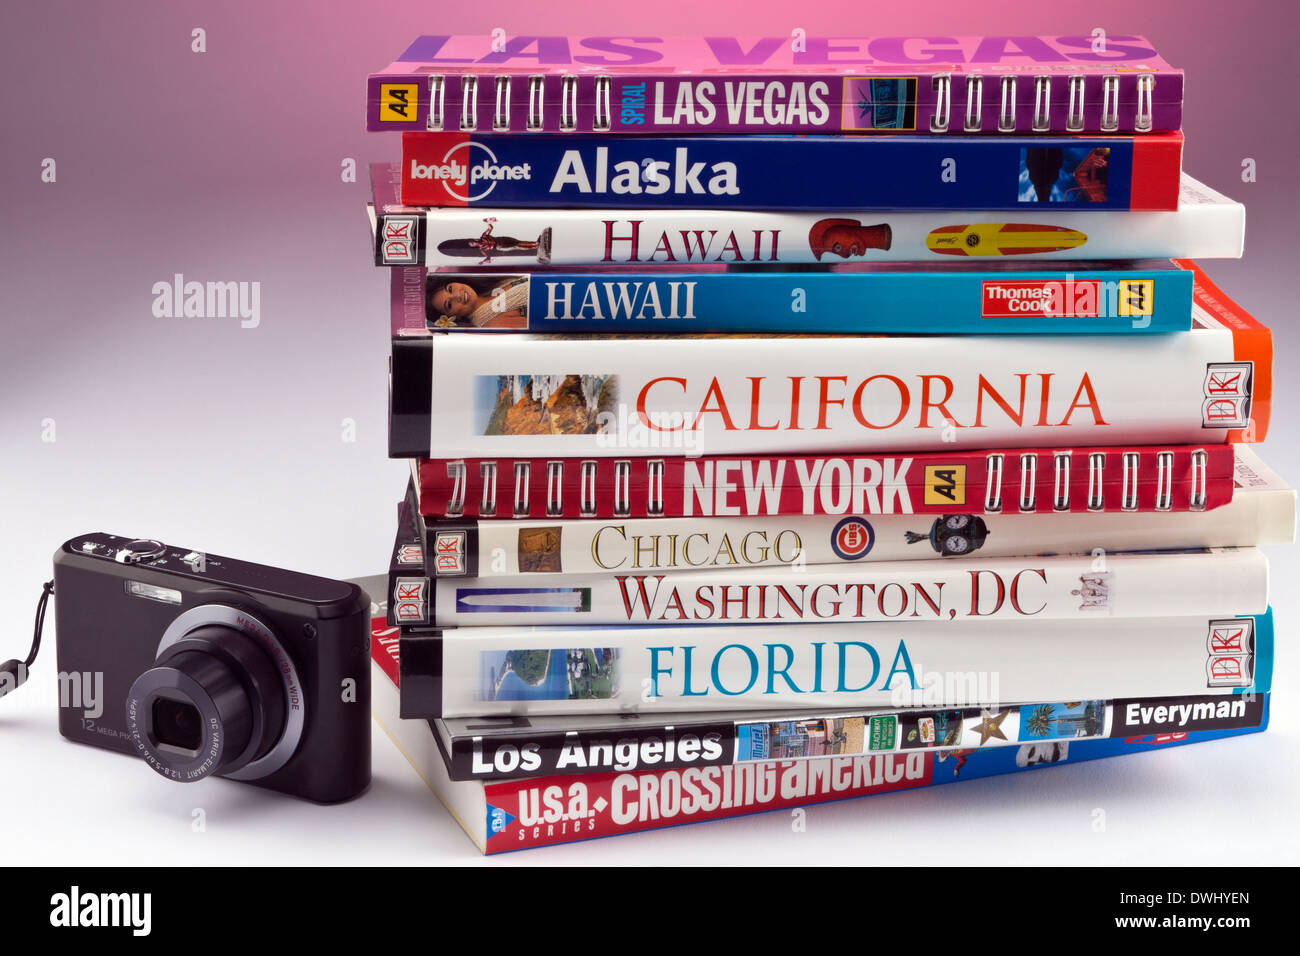 Travel Guides to the greatest destinations in the United States of America. - Stock Image